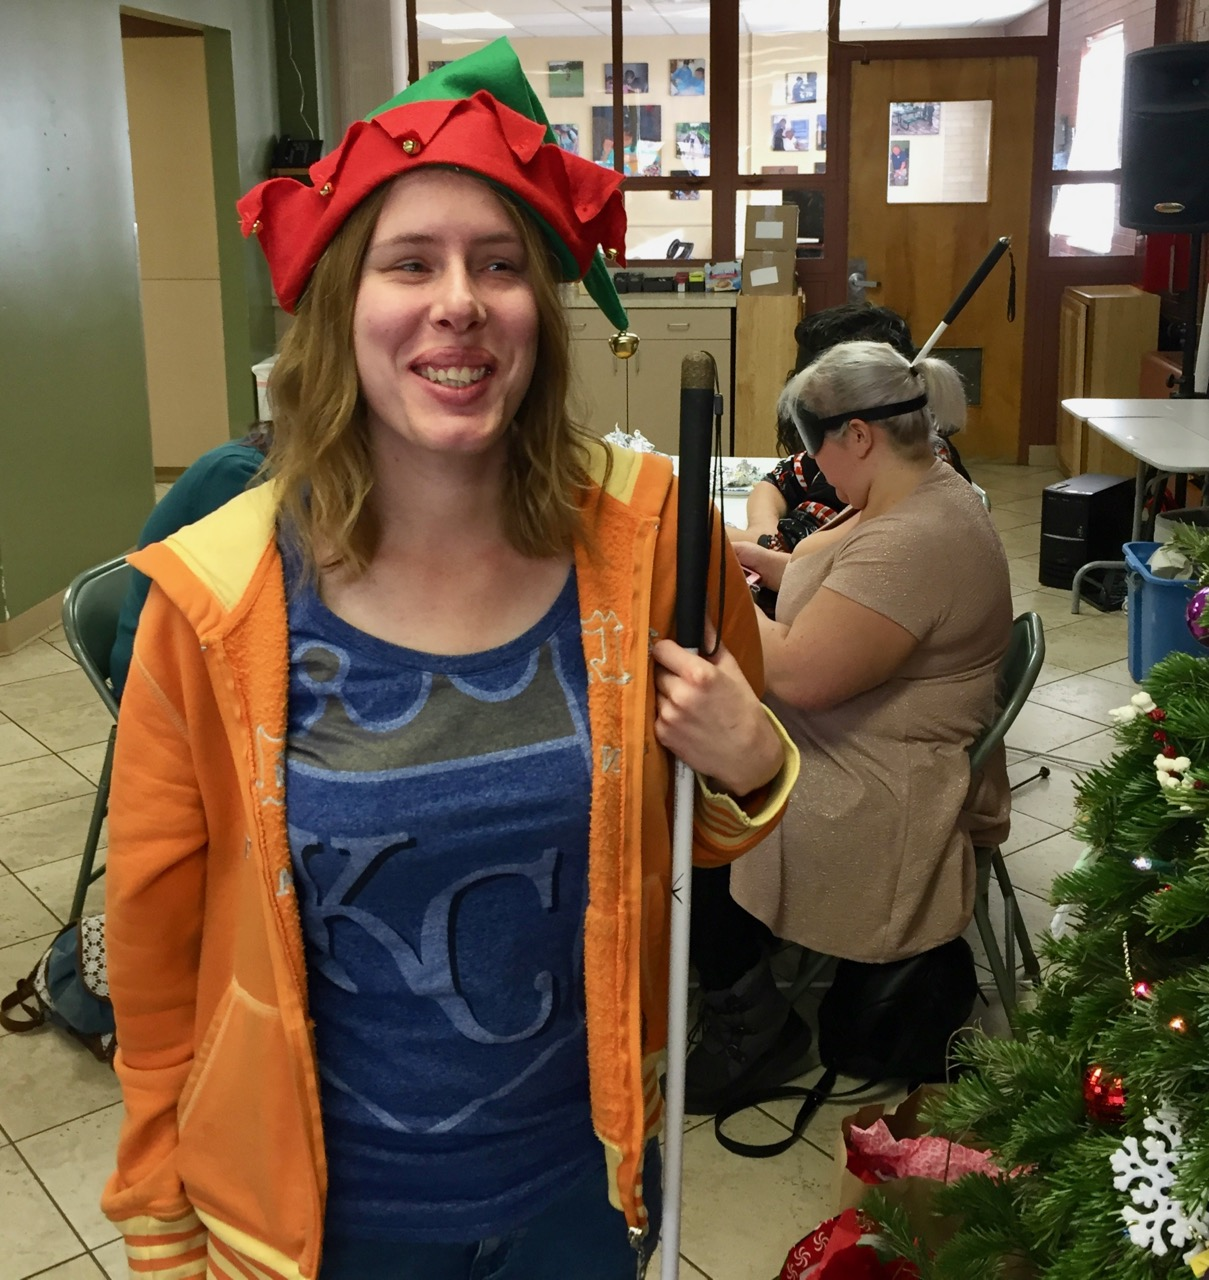 Holly wears a colorful elf hat with bells and smiles while standing next to the Christmas Tree